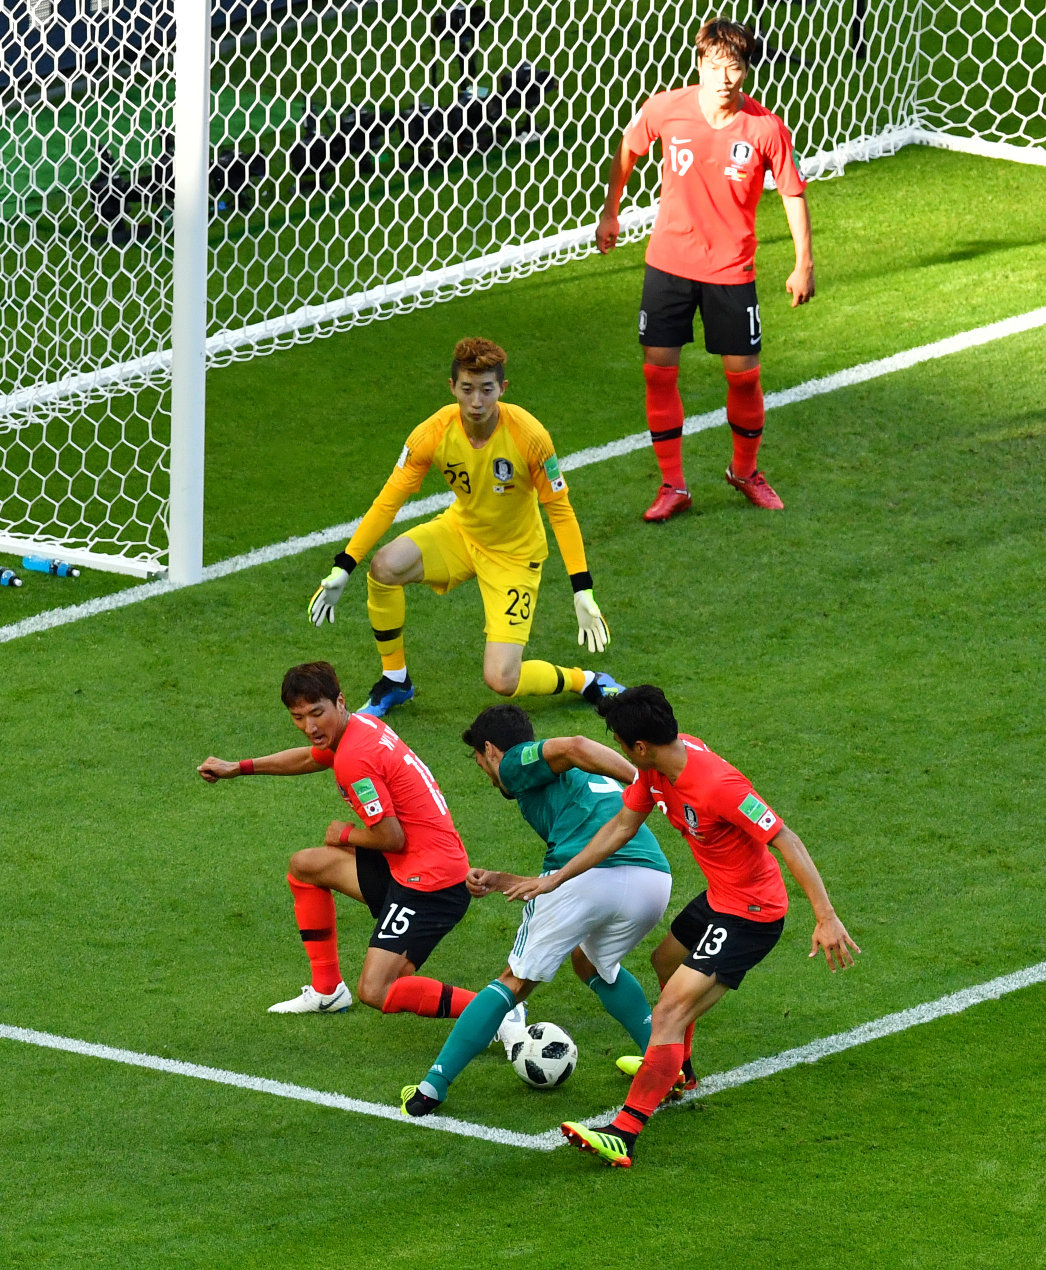 2018-06-27T144221Z_1904898310_RC121AD6A0D0_RTRMADP_3_SOCCER-WORLDCUP-KOR-GER